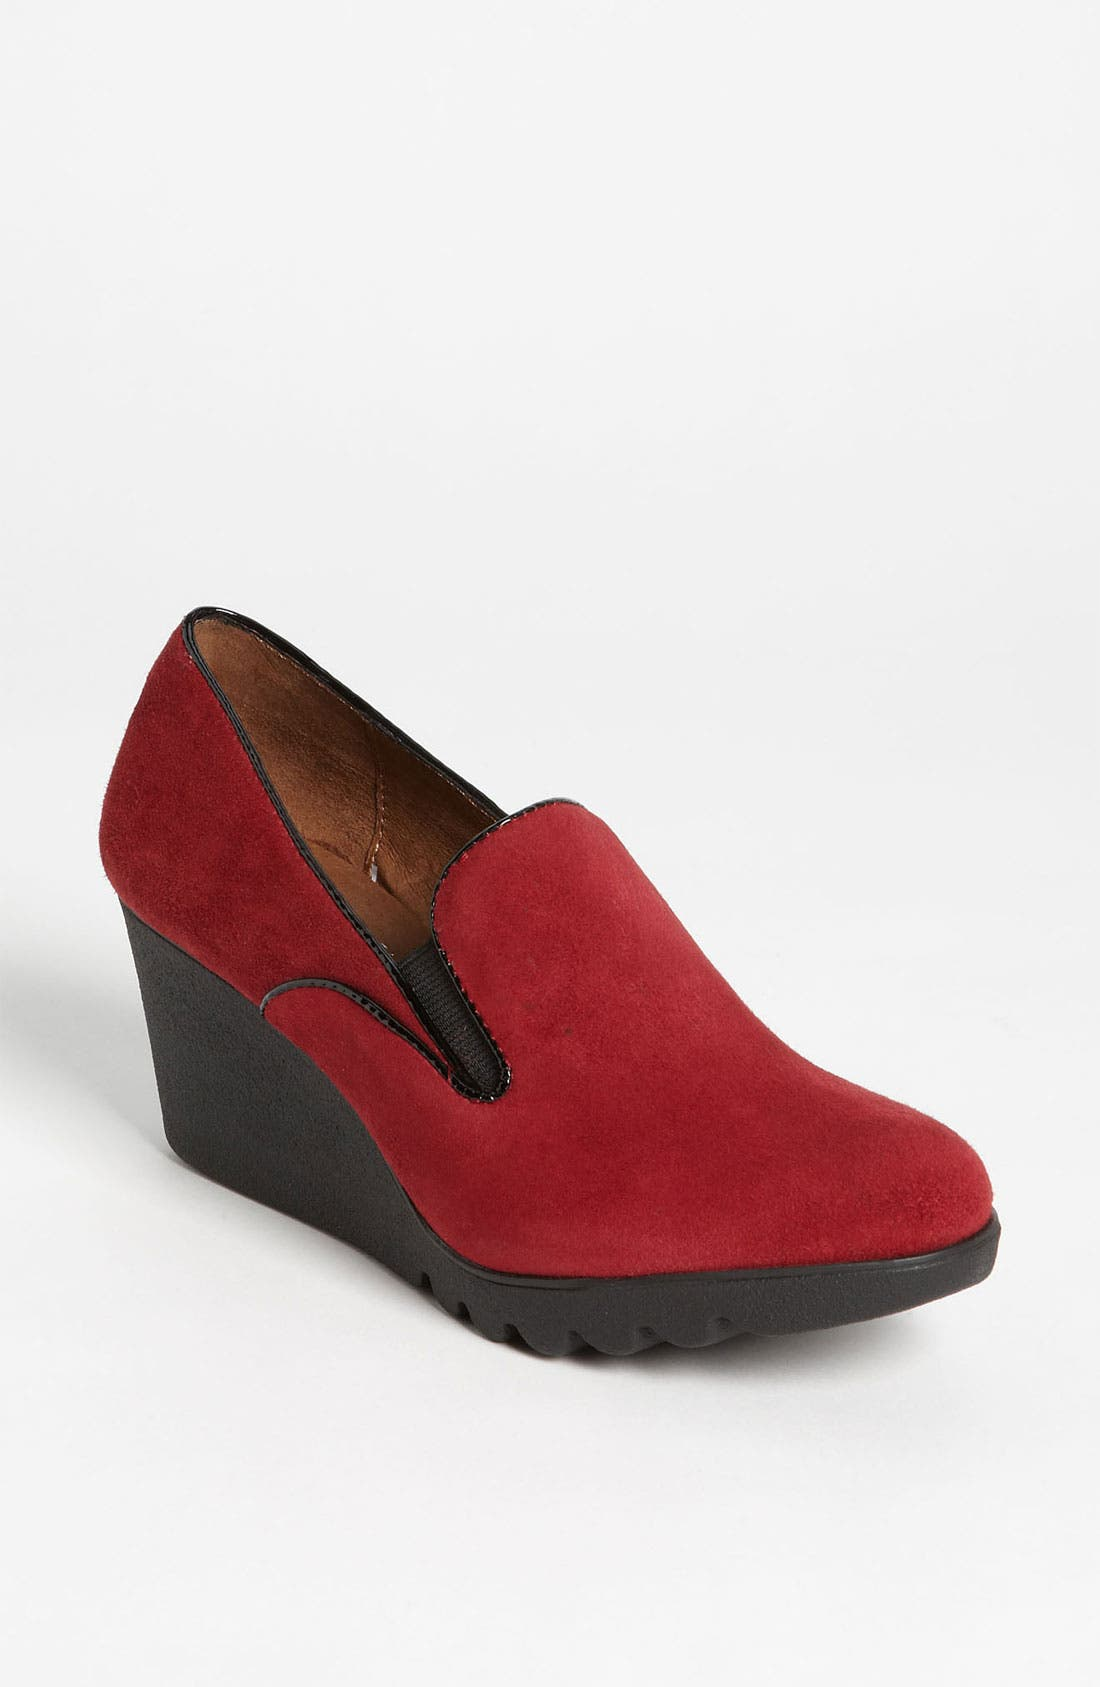 Main Image - Donald J Pliner 'Melia' Wedge Loafer (Women)